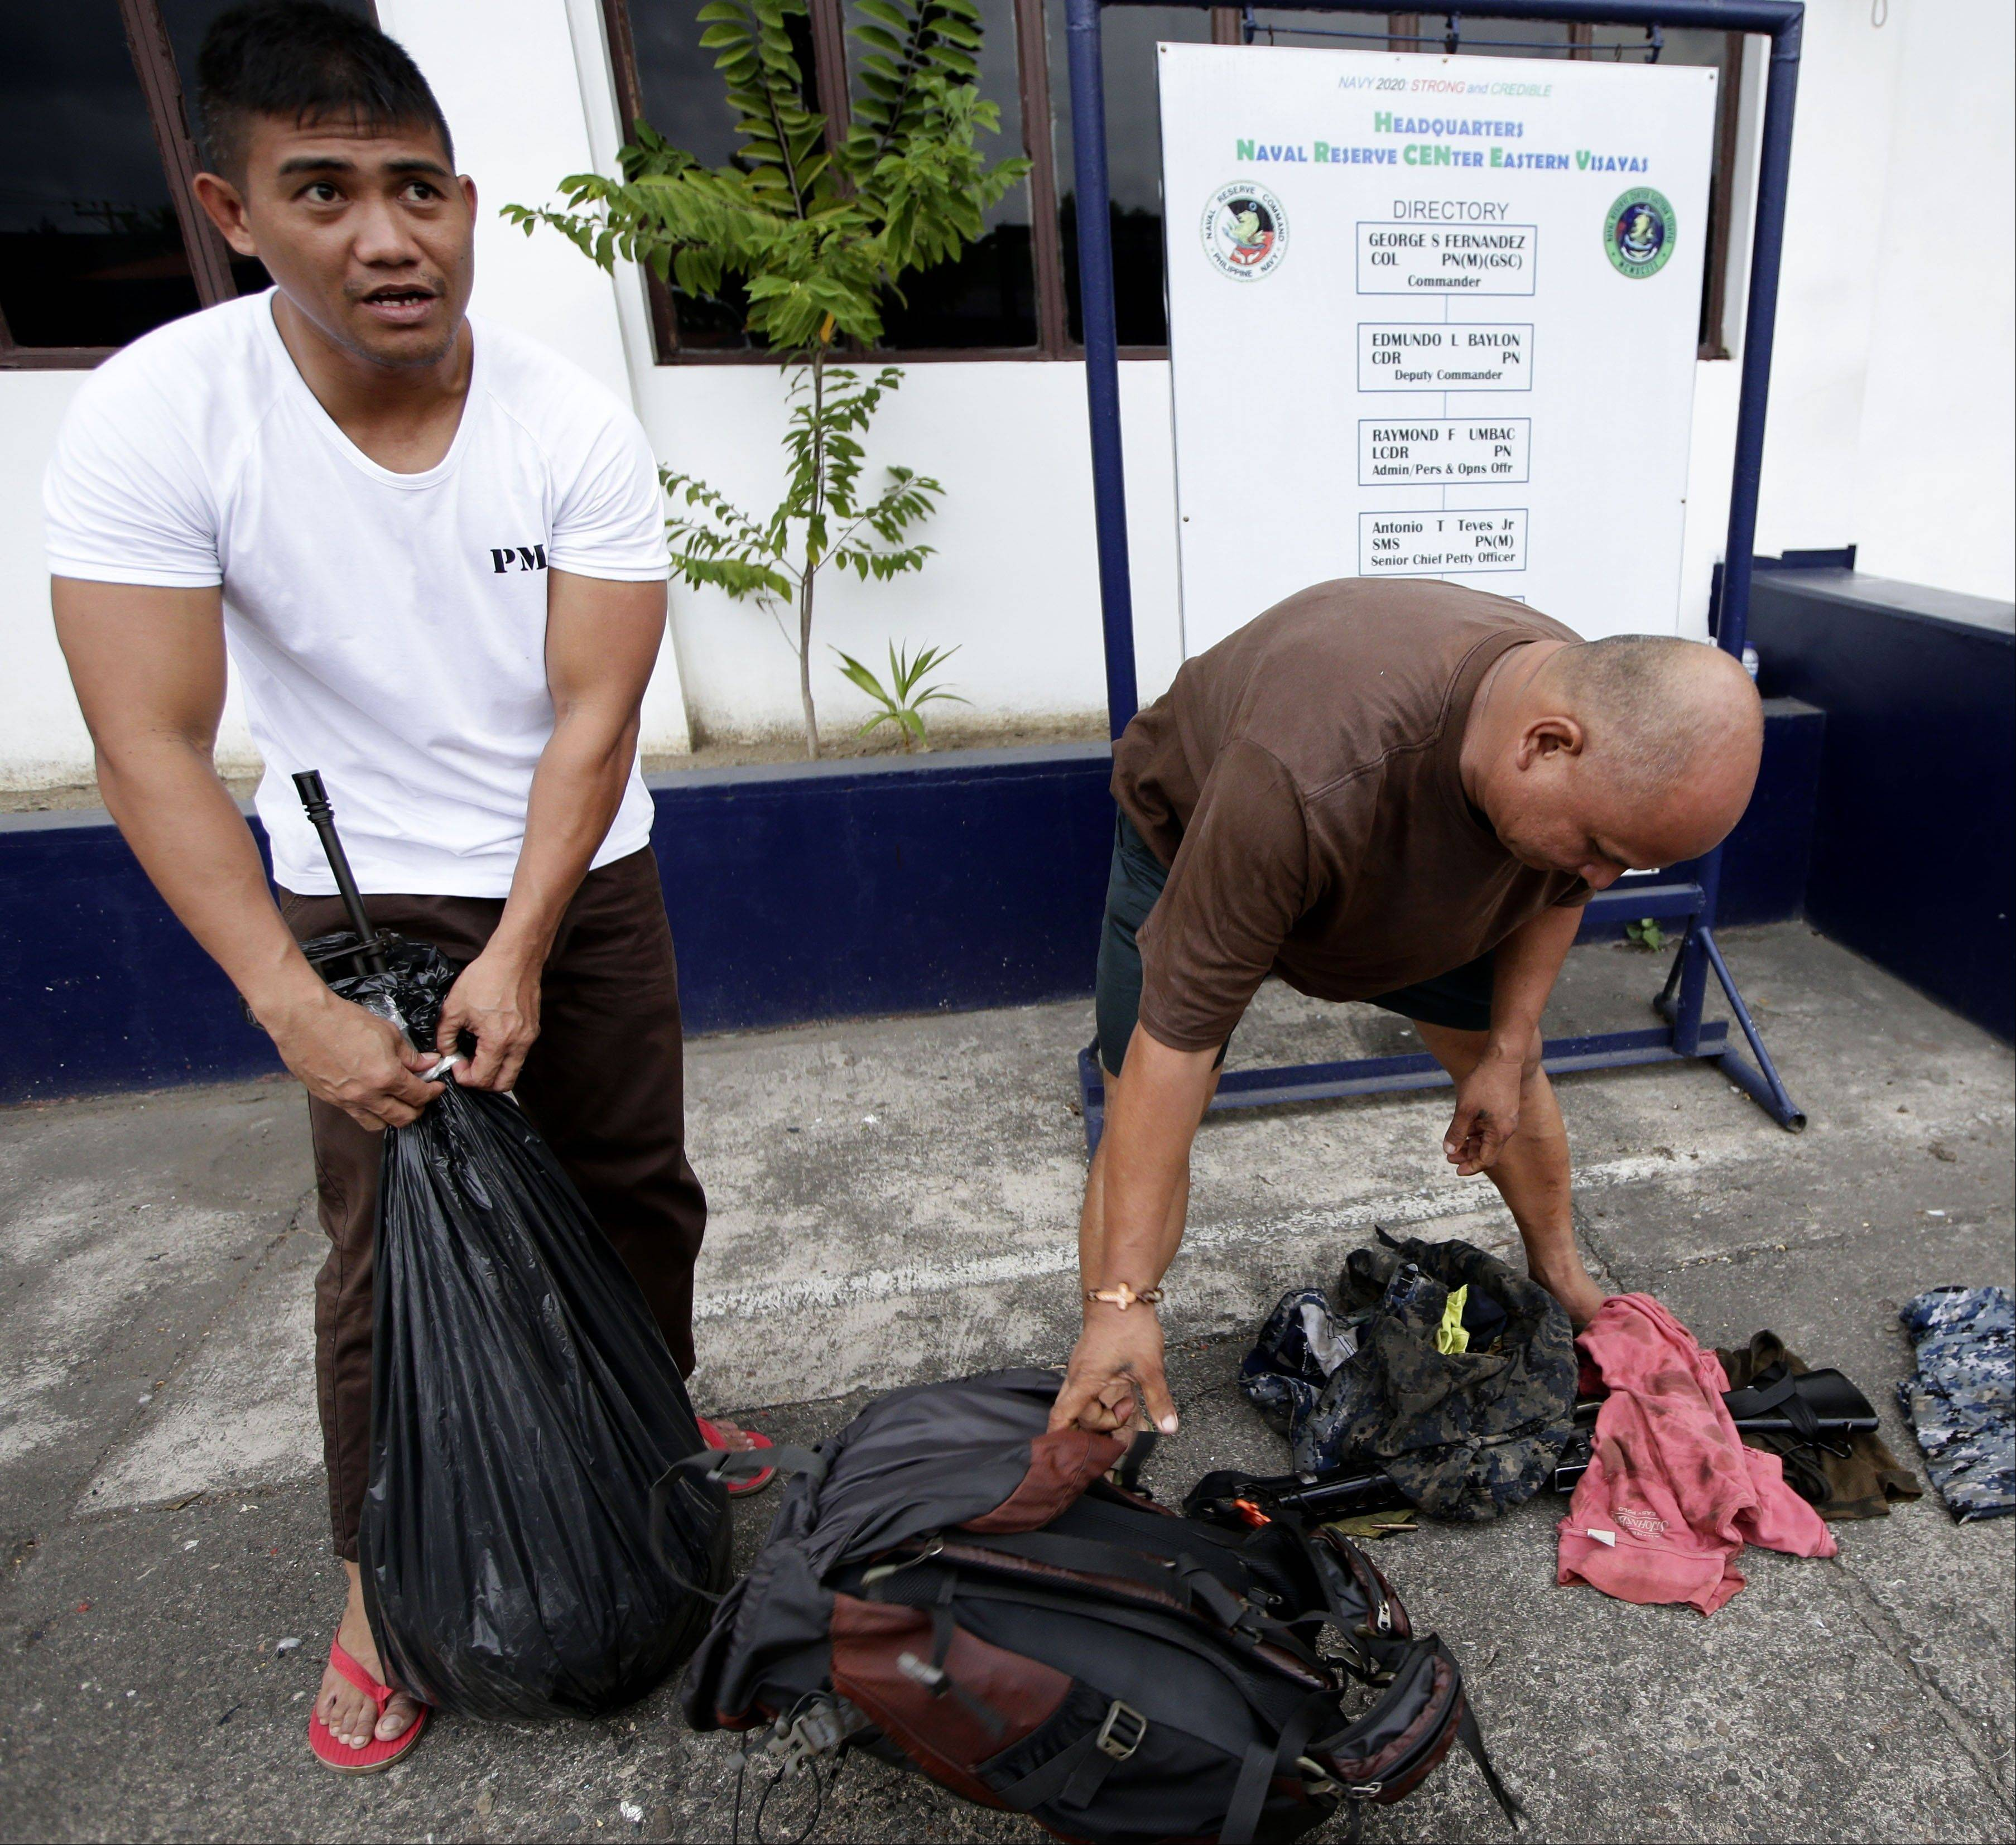 Navy marshal Richard Pestillos, left, of the Philippine Navy and Joseph Austria of the Philippine Coast Guard, show their M-16 rifles and other items they saved as they recount to the Associated Press Sunday Aug.18, 2013 in Cebu city, central Philippines how they saved the lives of about two dozen passengers of the ill-fated MV Thomas Aquinas when it collided with the cargo ship Sulpicio Express Siete off the coast of Talisay near Cebu Friday.